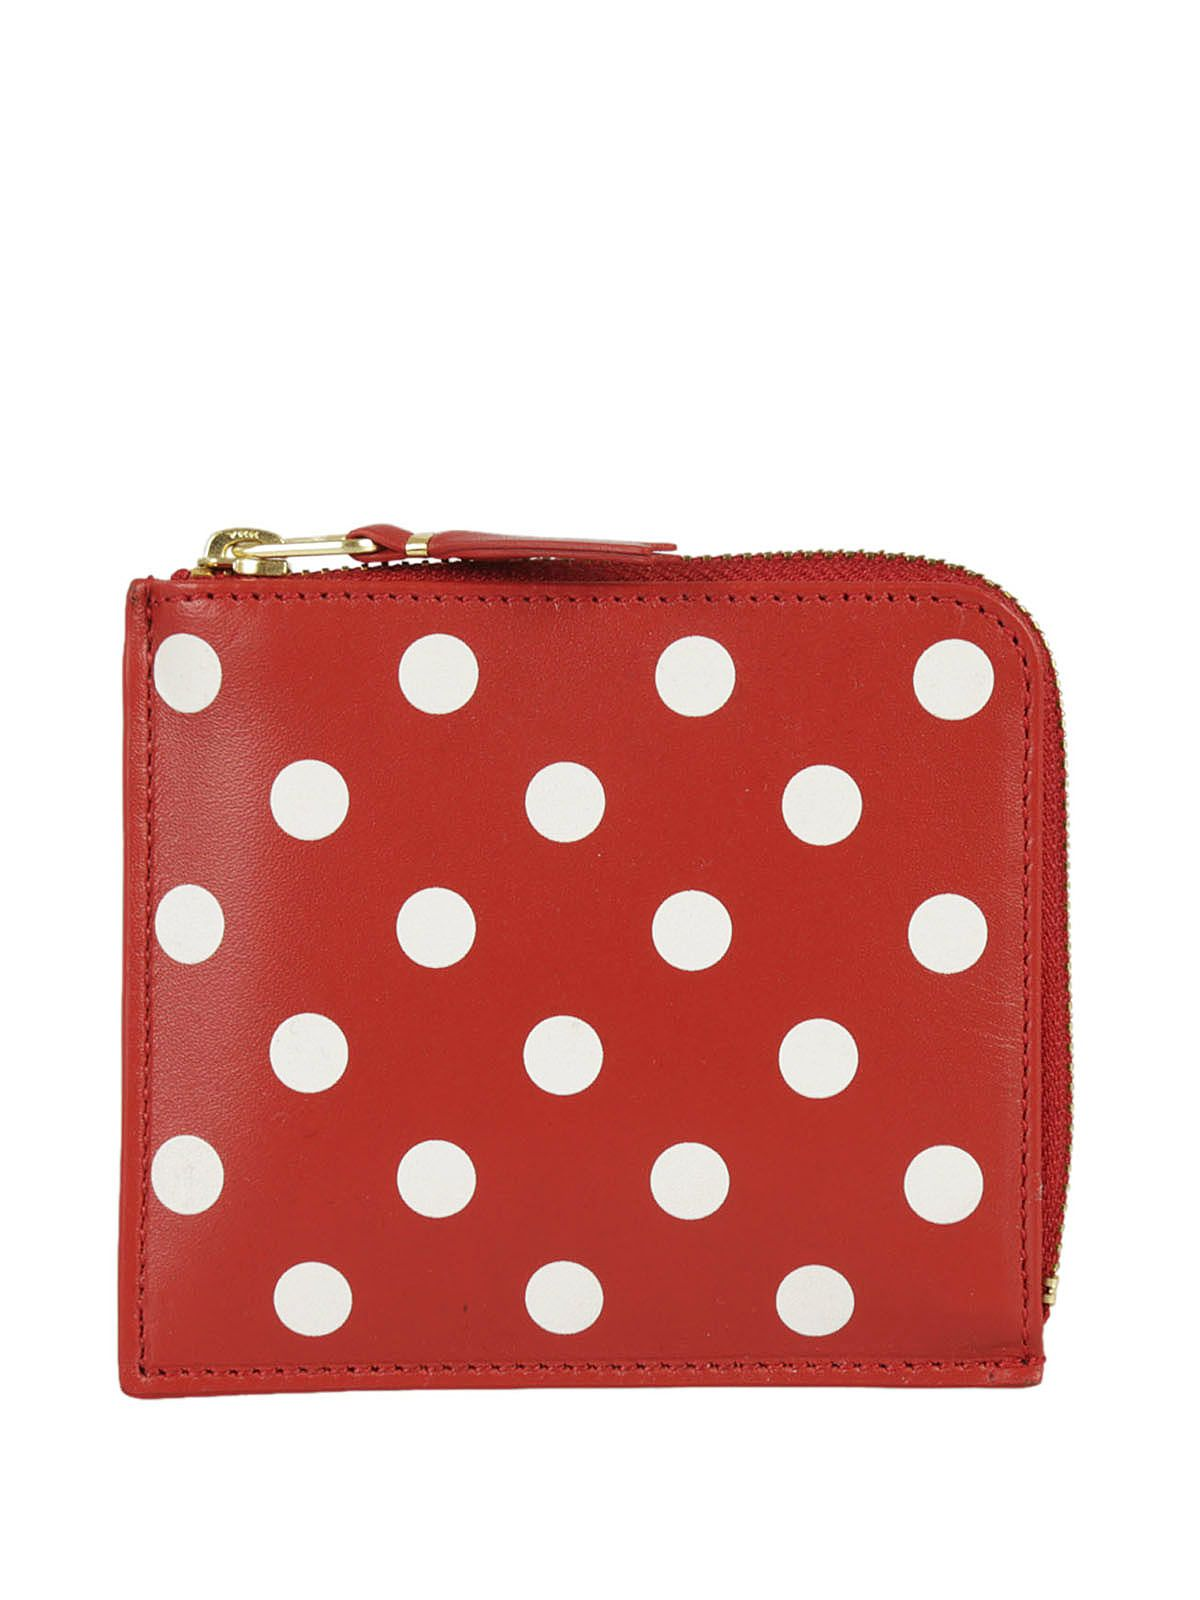 Comme Des Garçons Wallets Polka Dot Zip Around Wallet